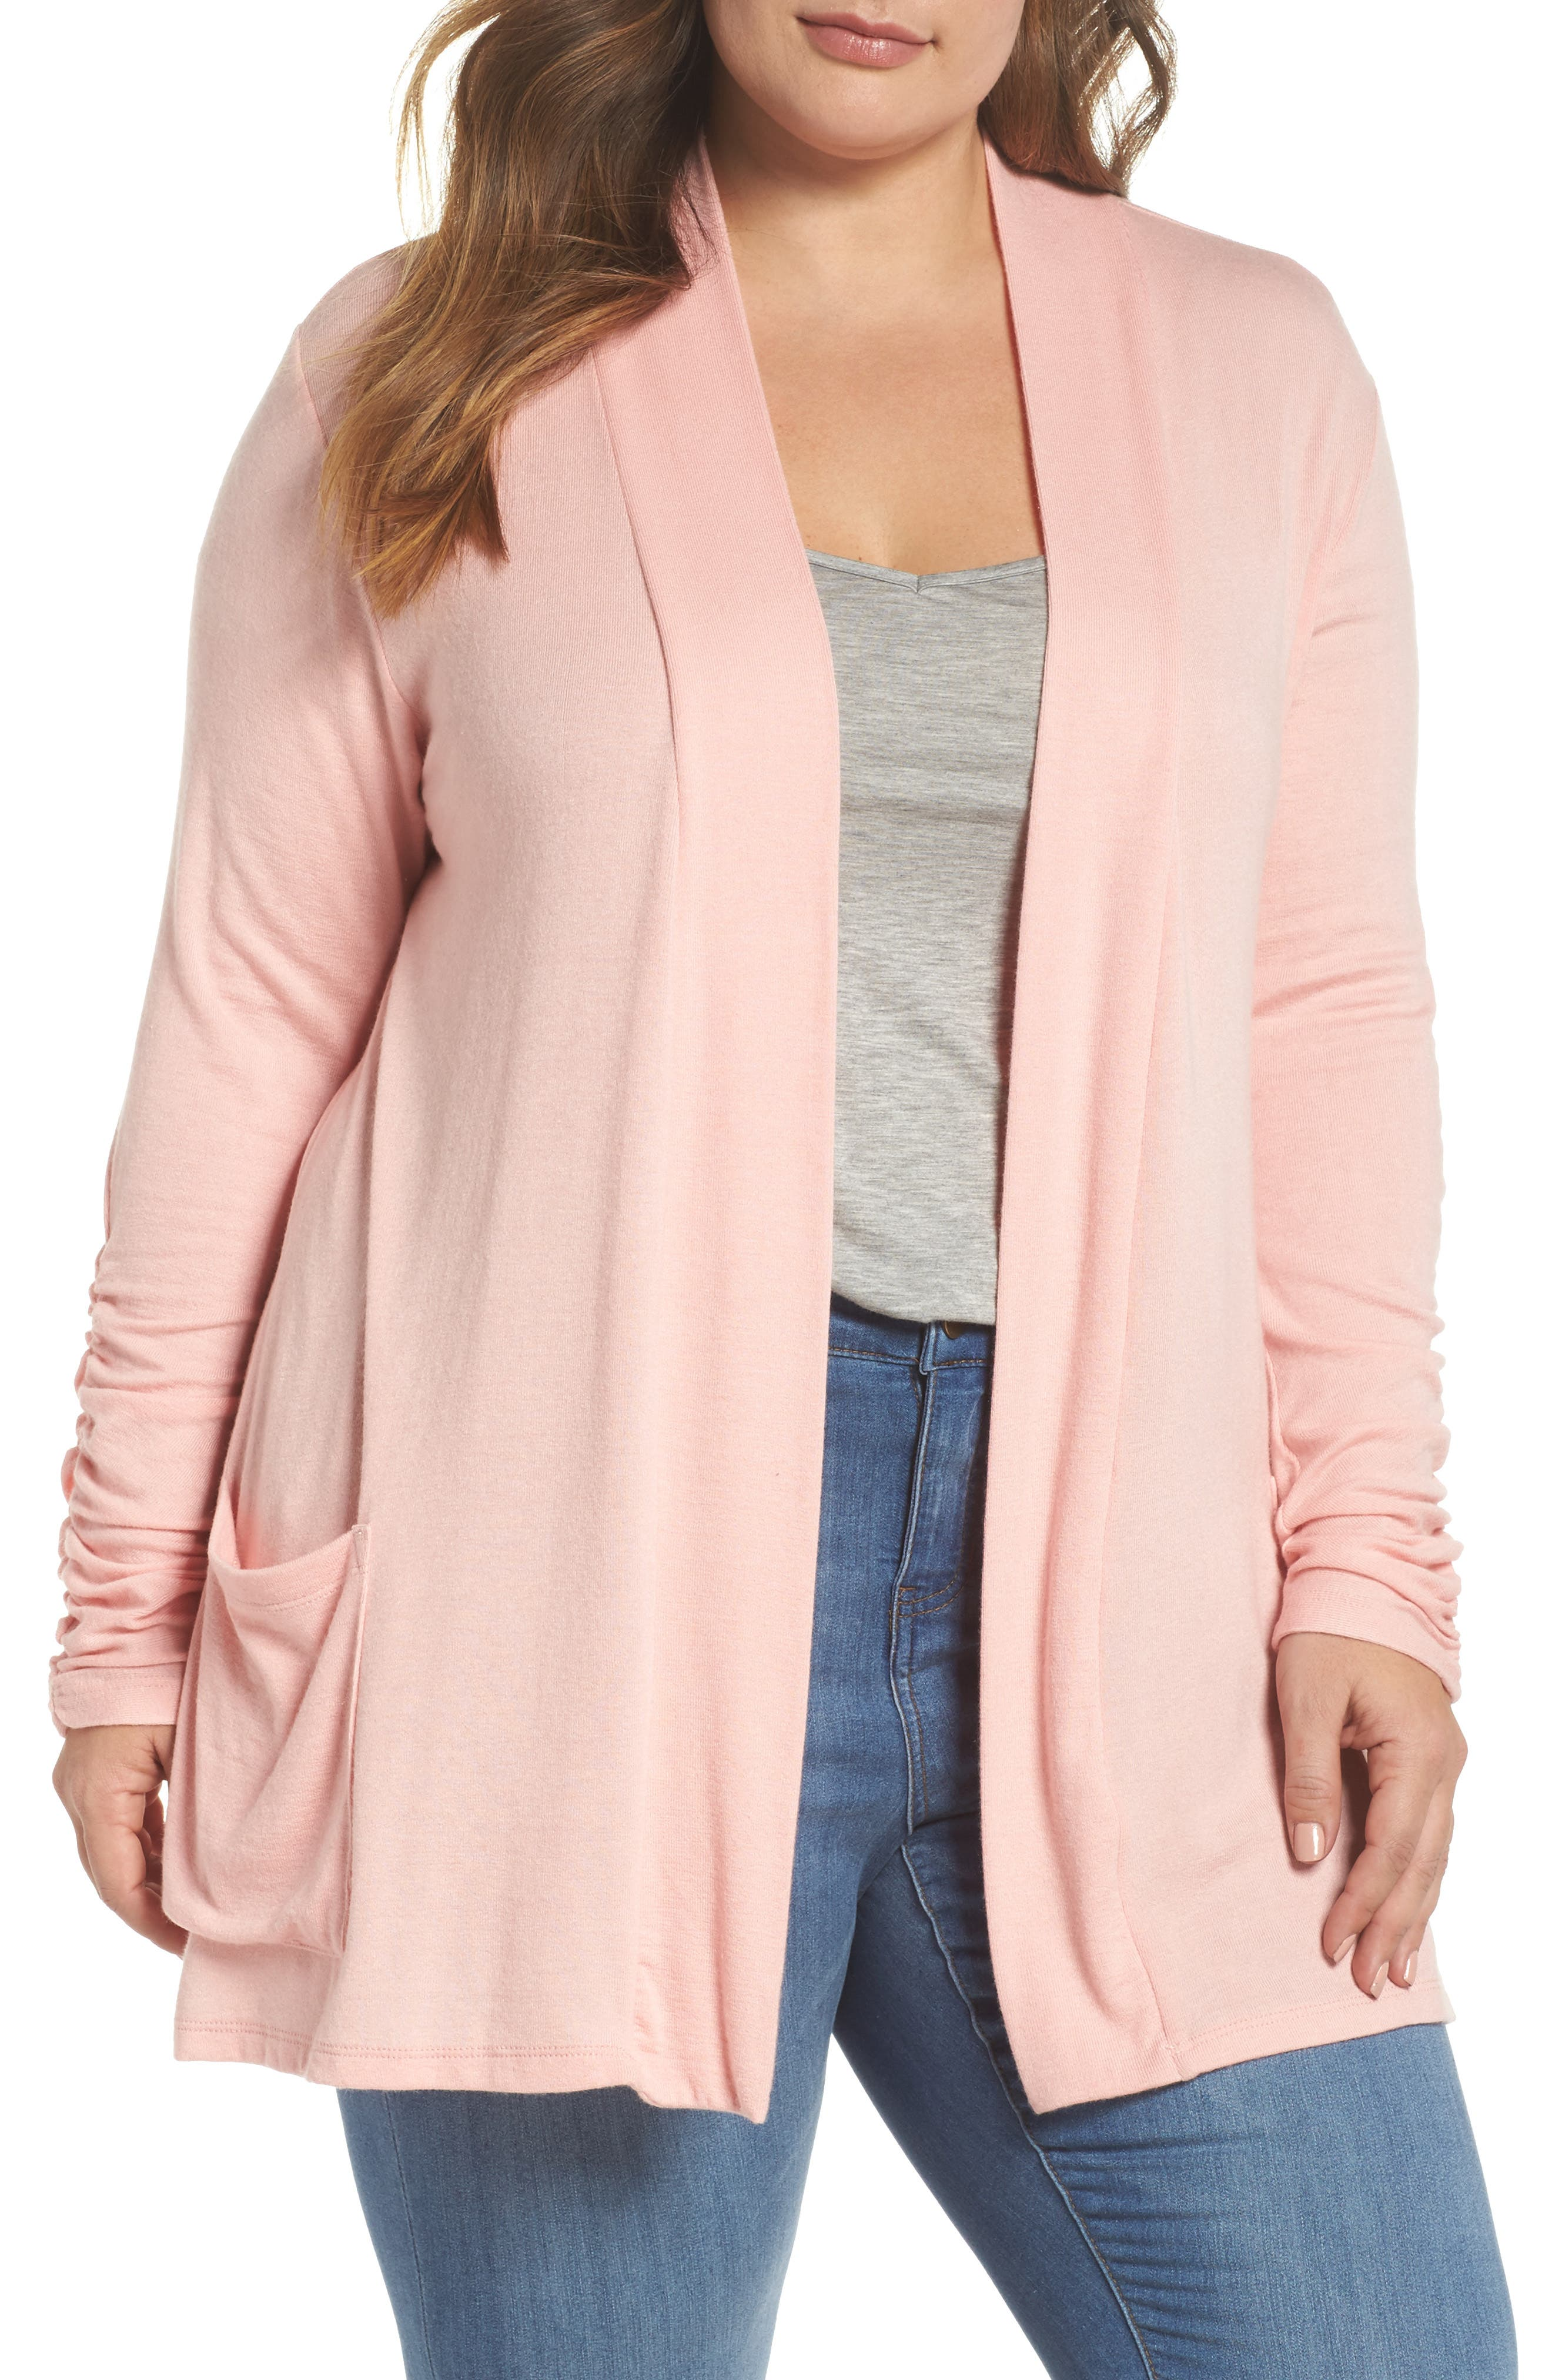 Bobeau Shirred Sleeve Cardigan (Plus Size)